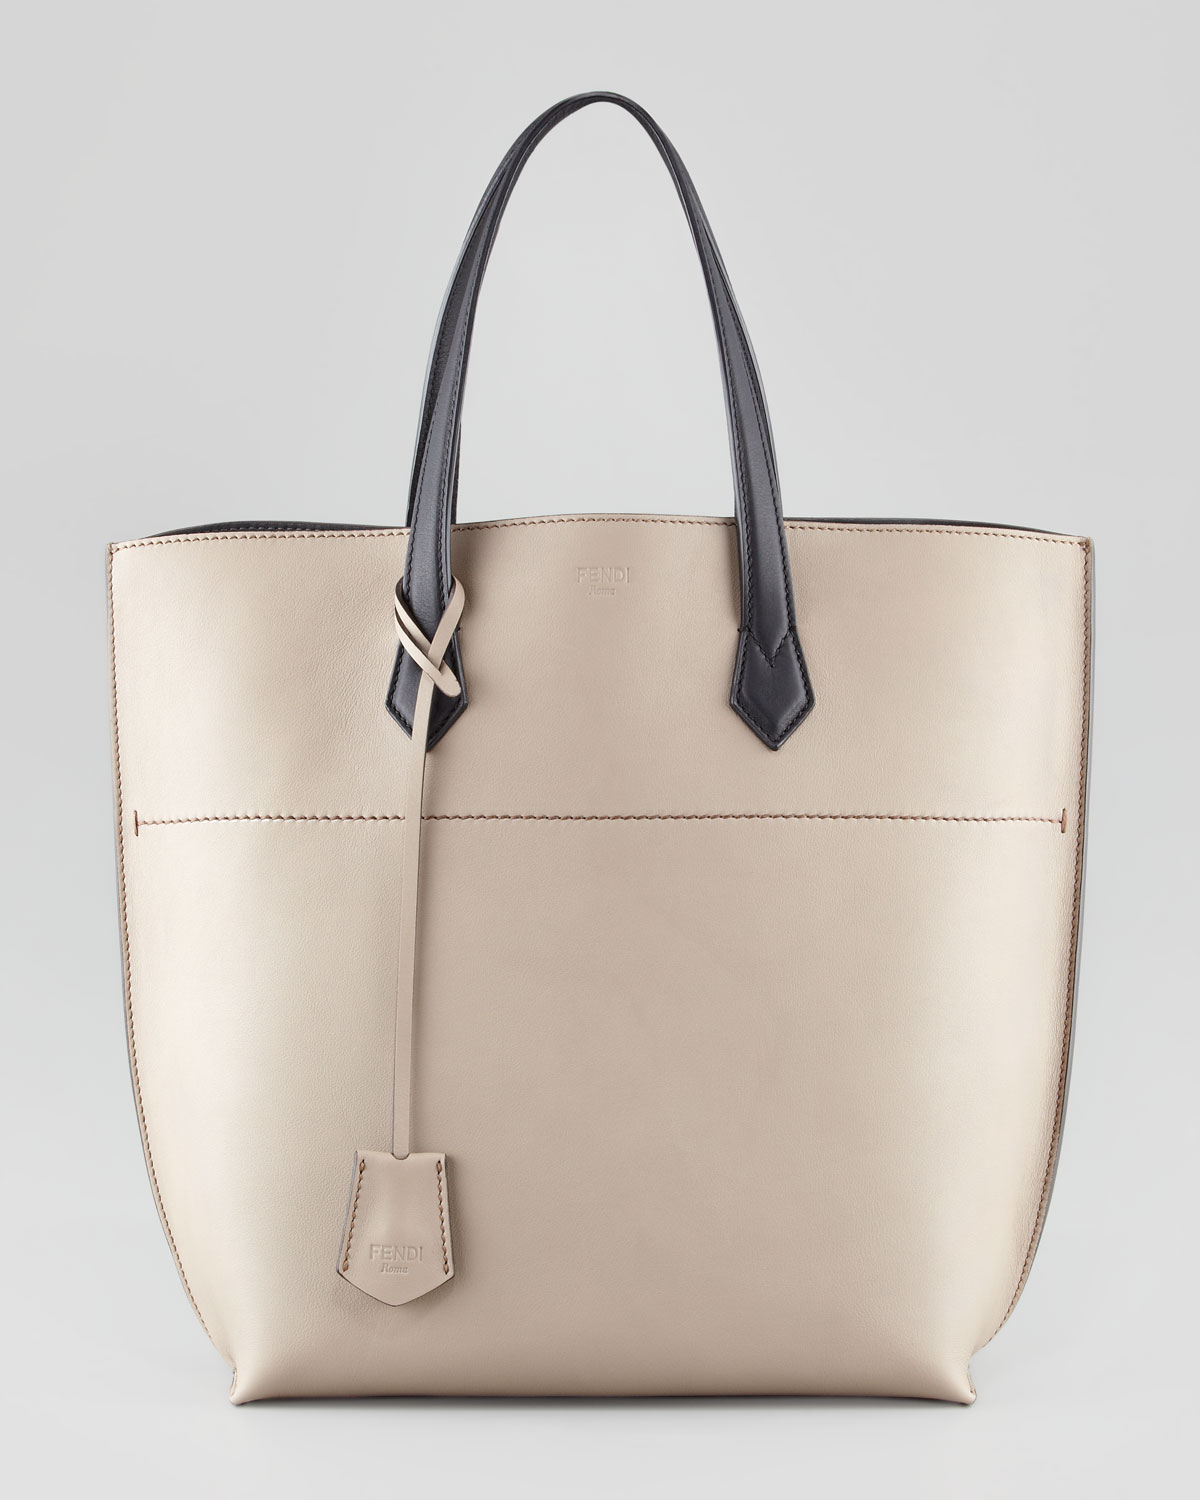 Fendi Leather Shopping Tote Bag in Natural | Lyst